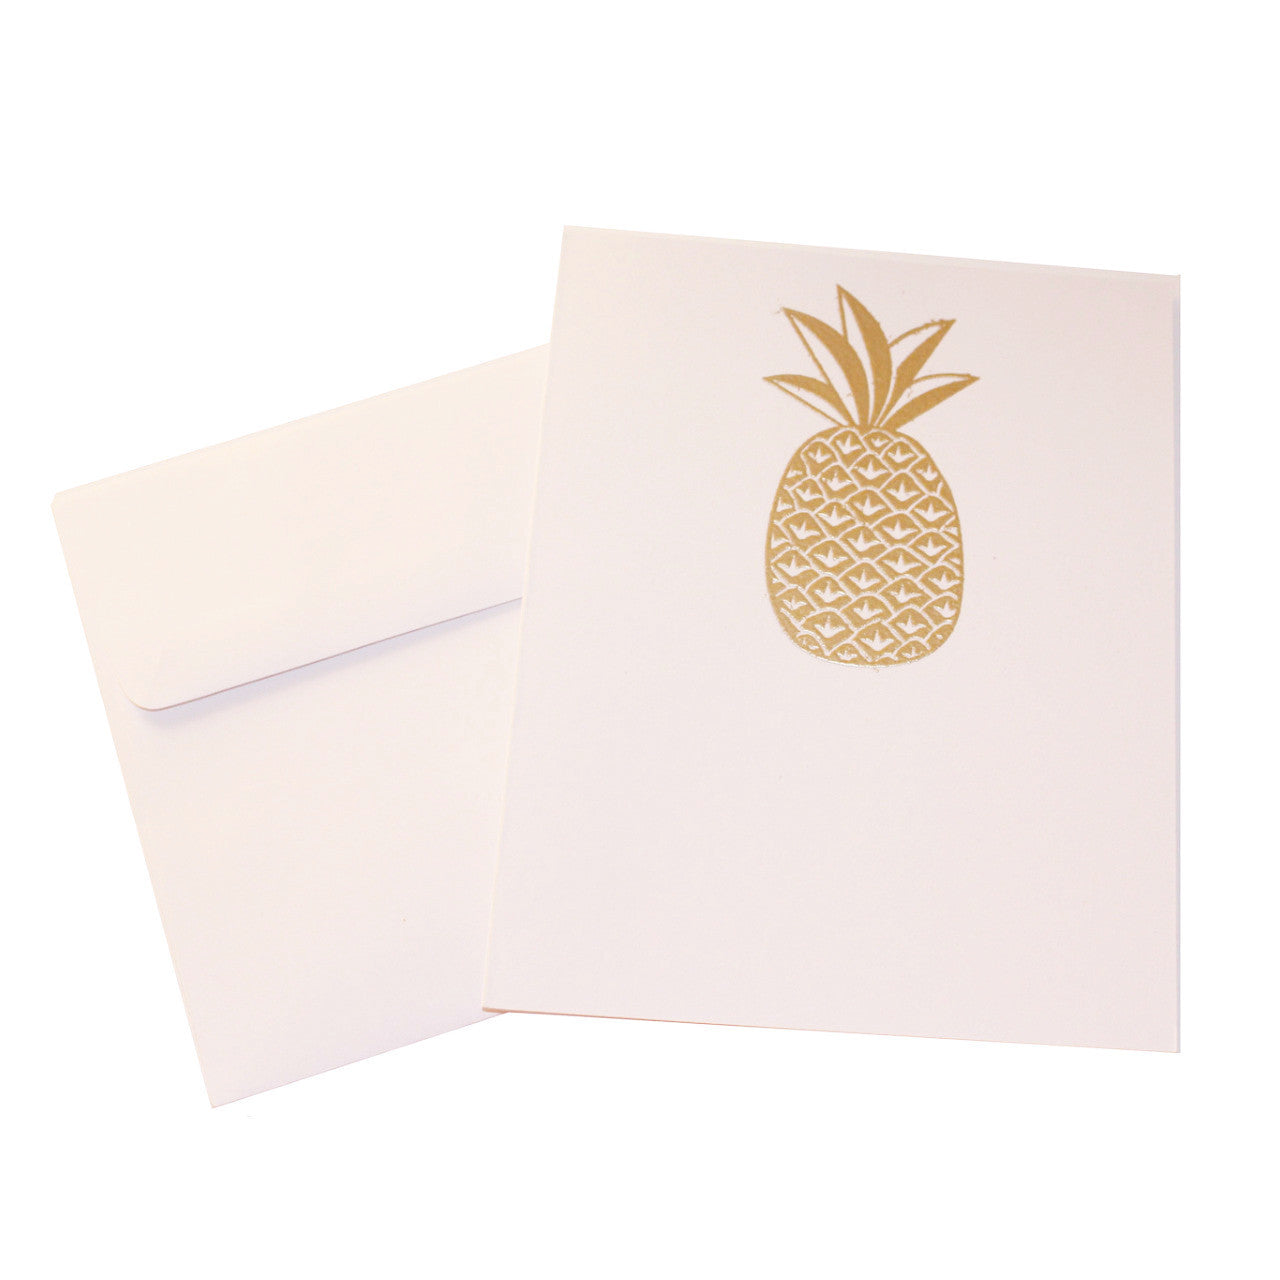 photograph regarding Embossed Stationery identified as Gold Embossed Pineapple Stationery